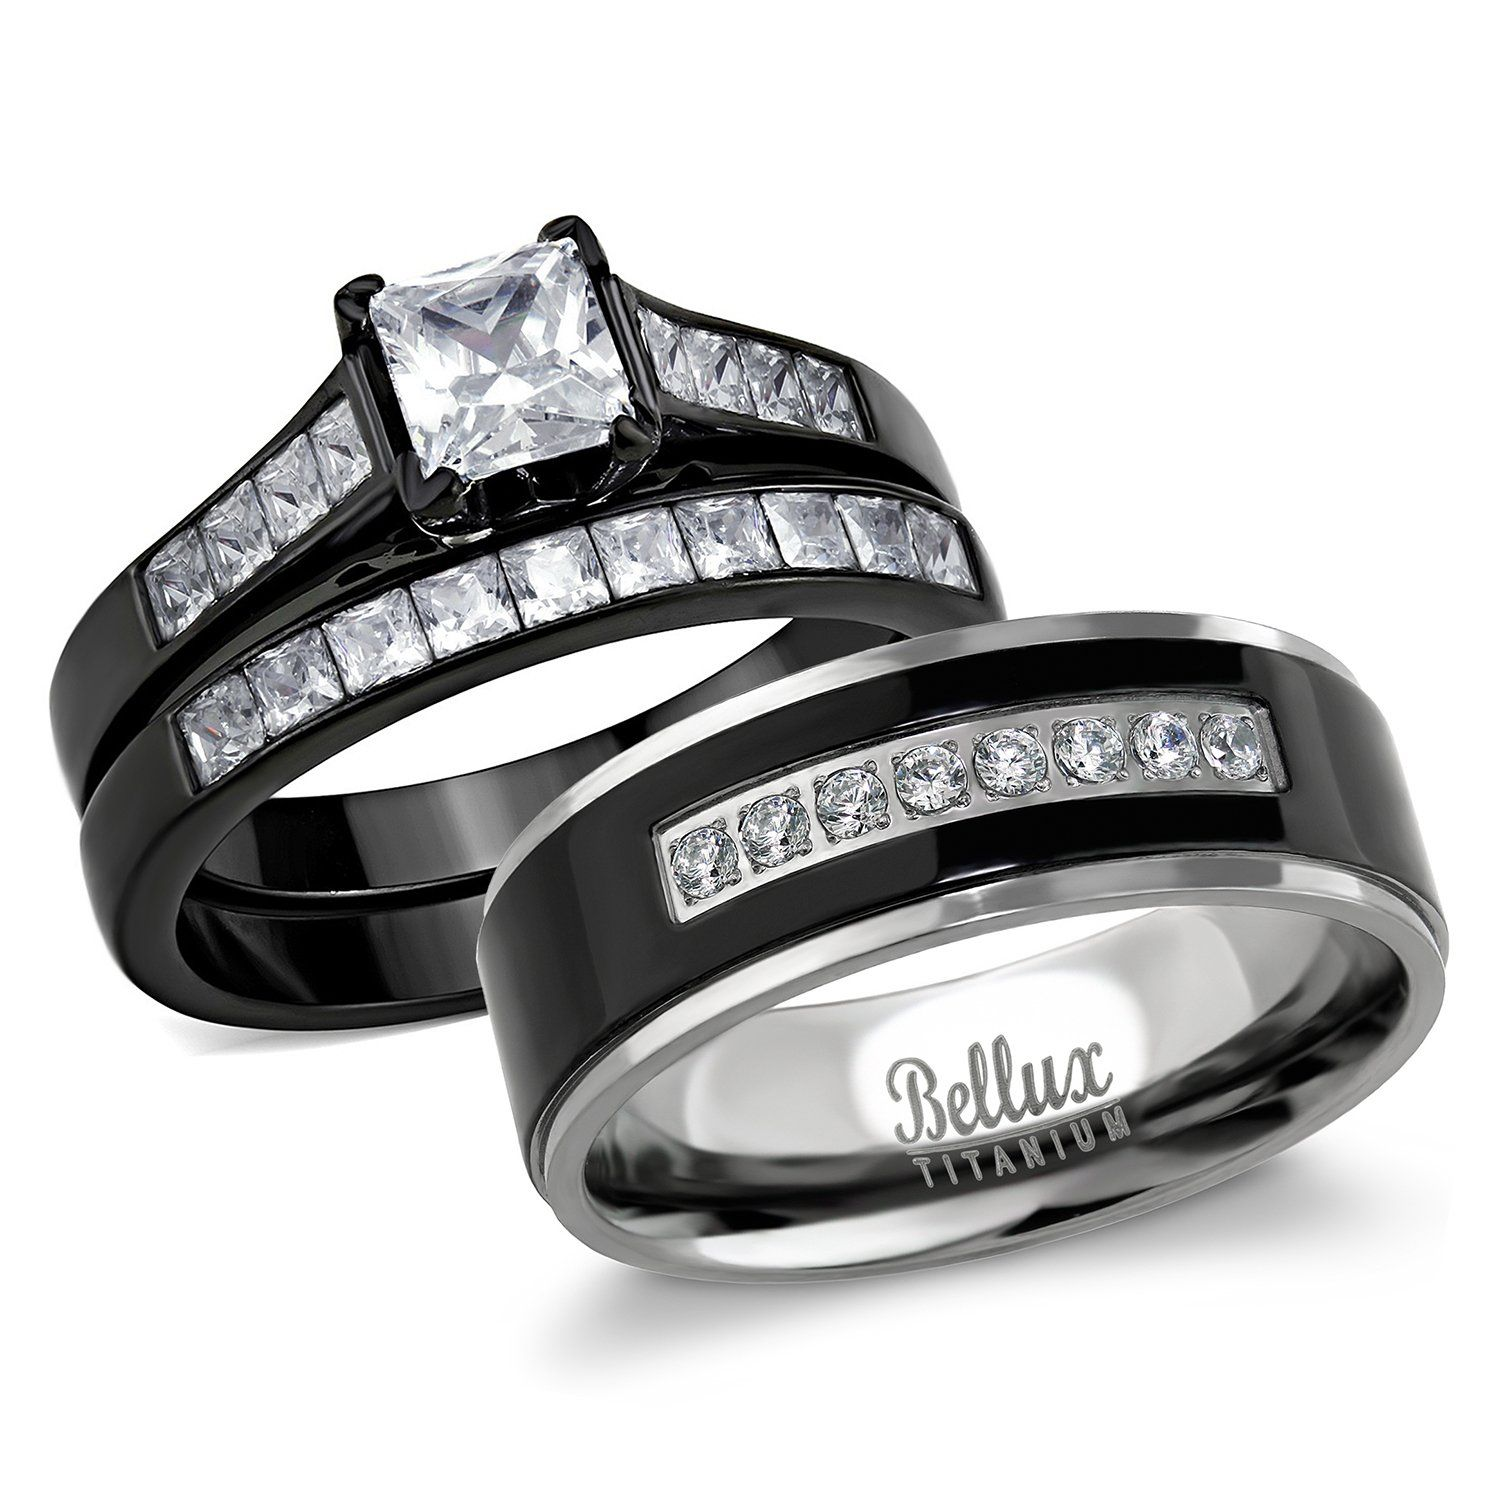 Bellux Style His And Hers Wedding Ring Sets Couples Black Stainless Steel Cz Bridal Sets T Walmart Wedding Rings Wedding Ring Sets Cheap Mens Wedding Bands